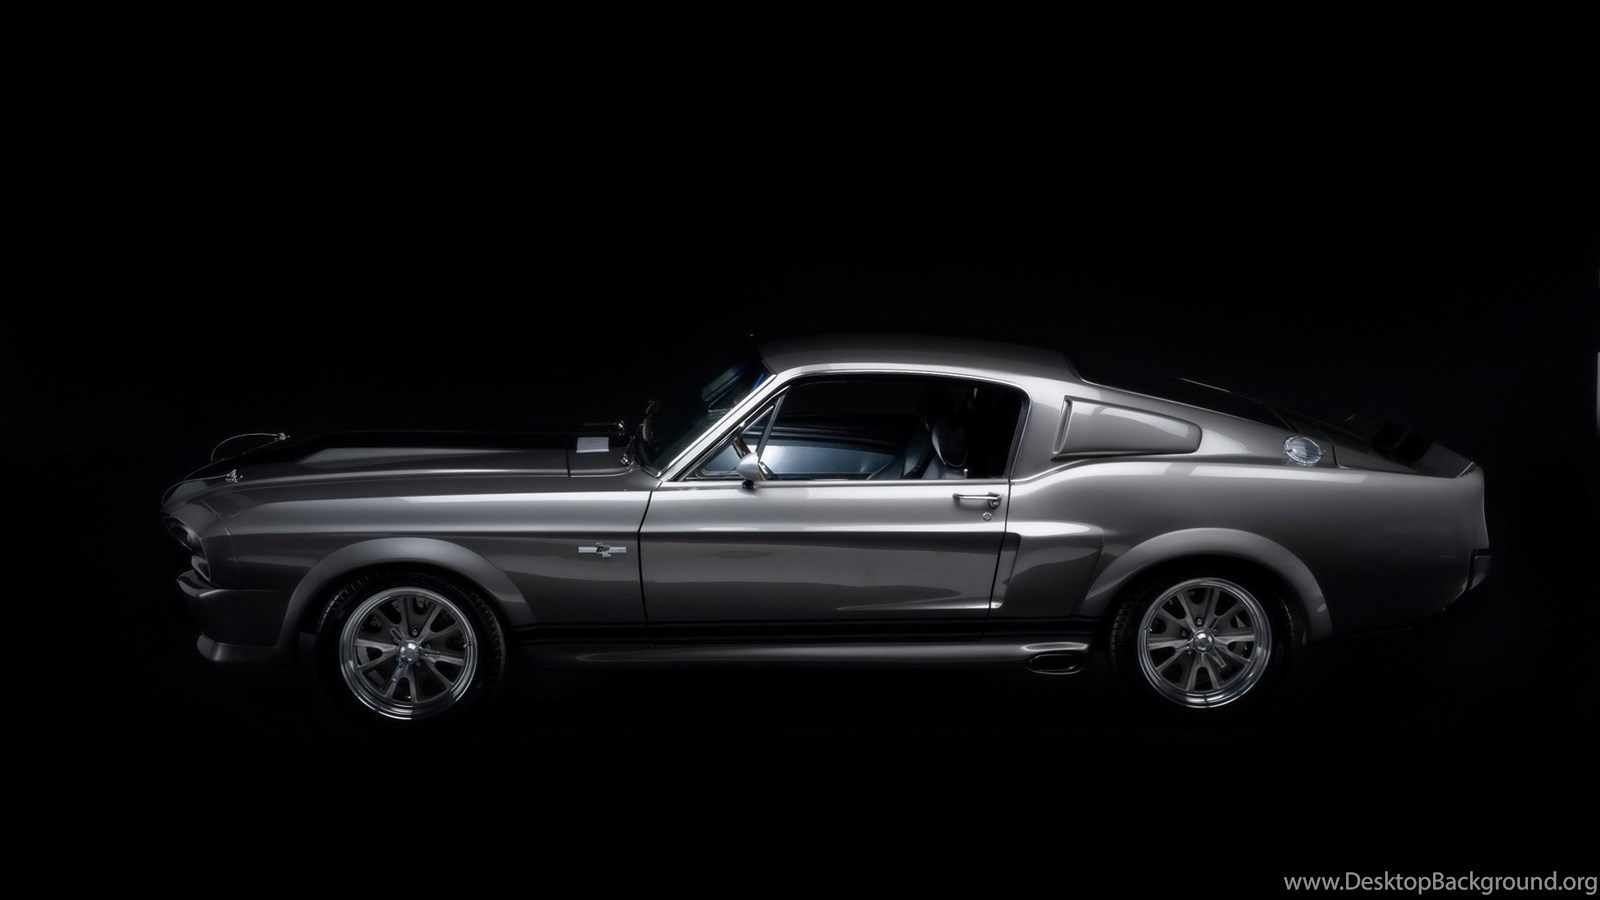 Ford Mustang 1967 Shelby GT500 Image Desktop Background